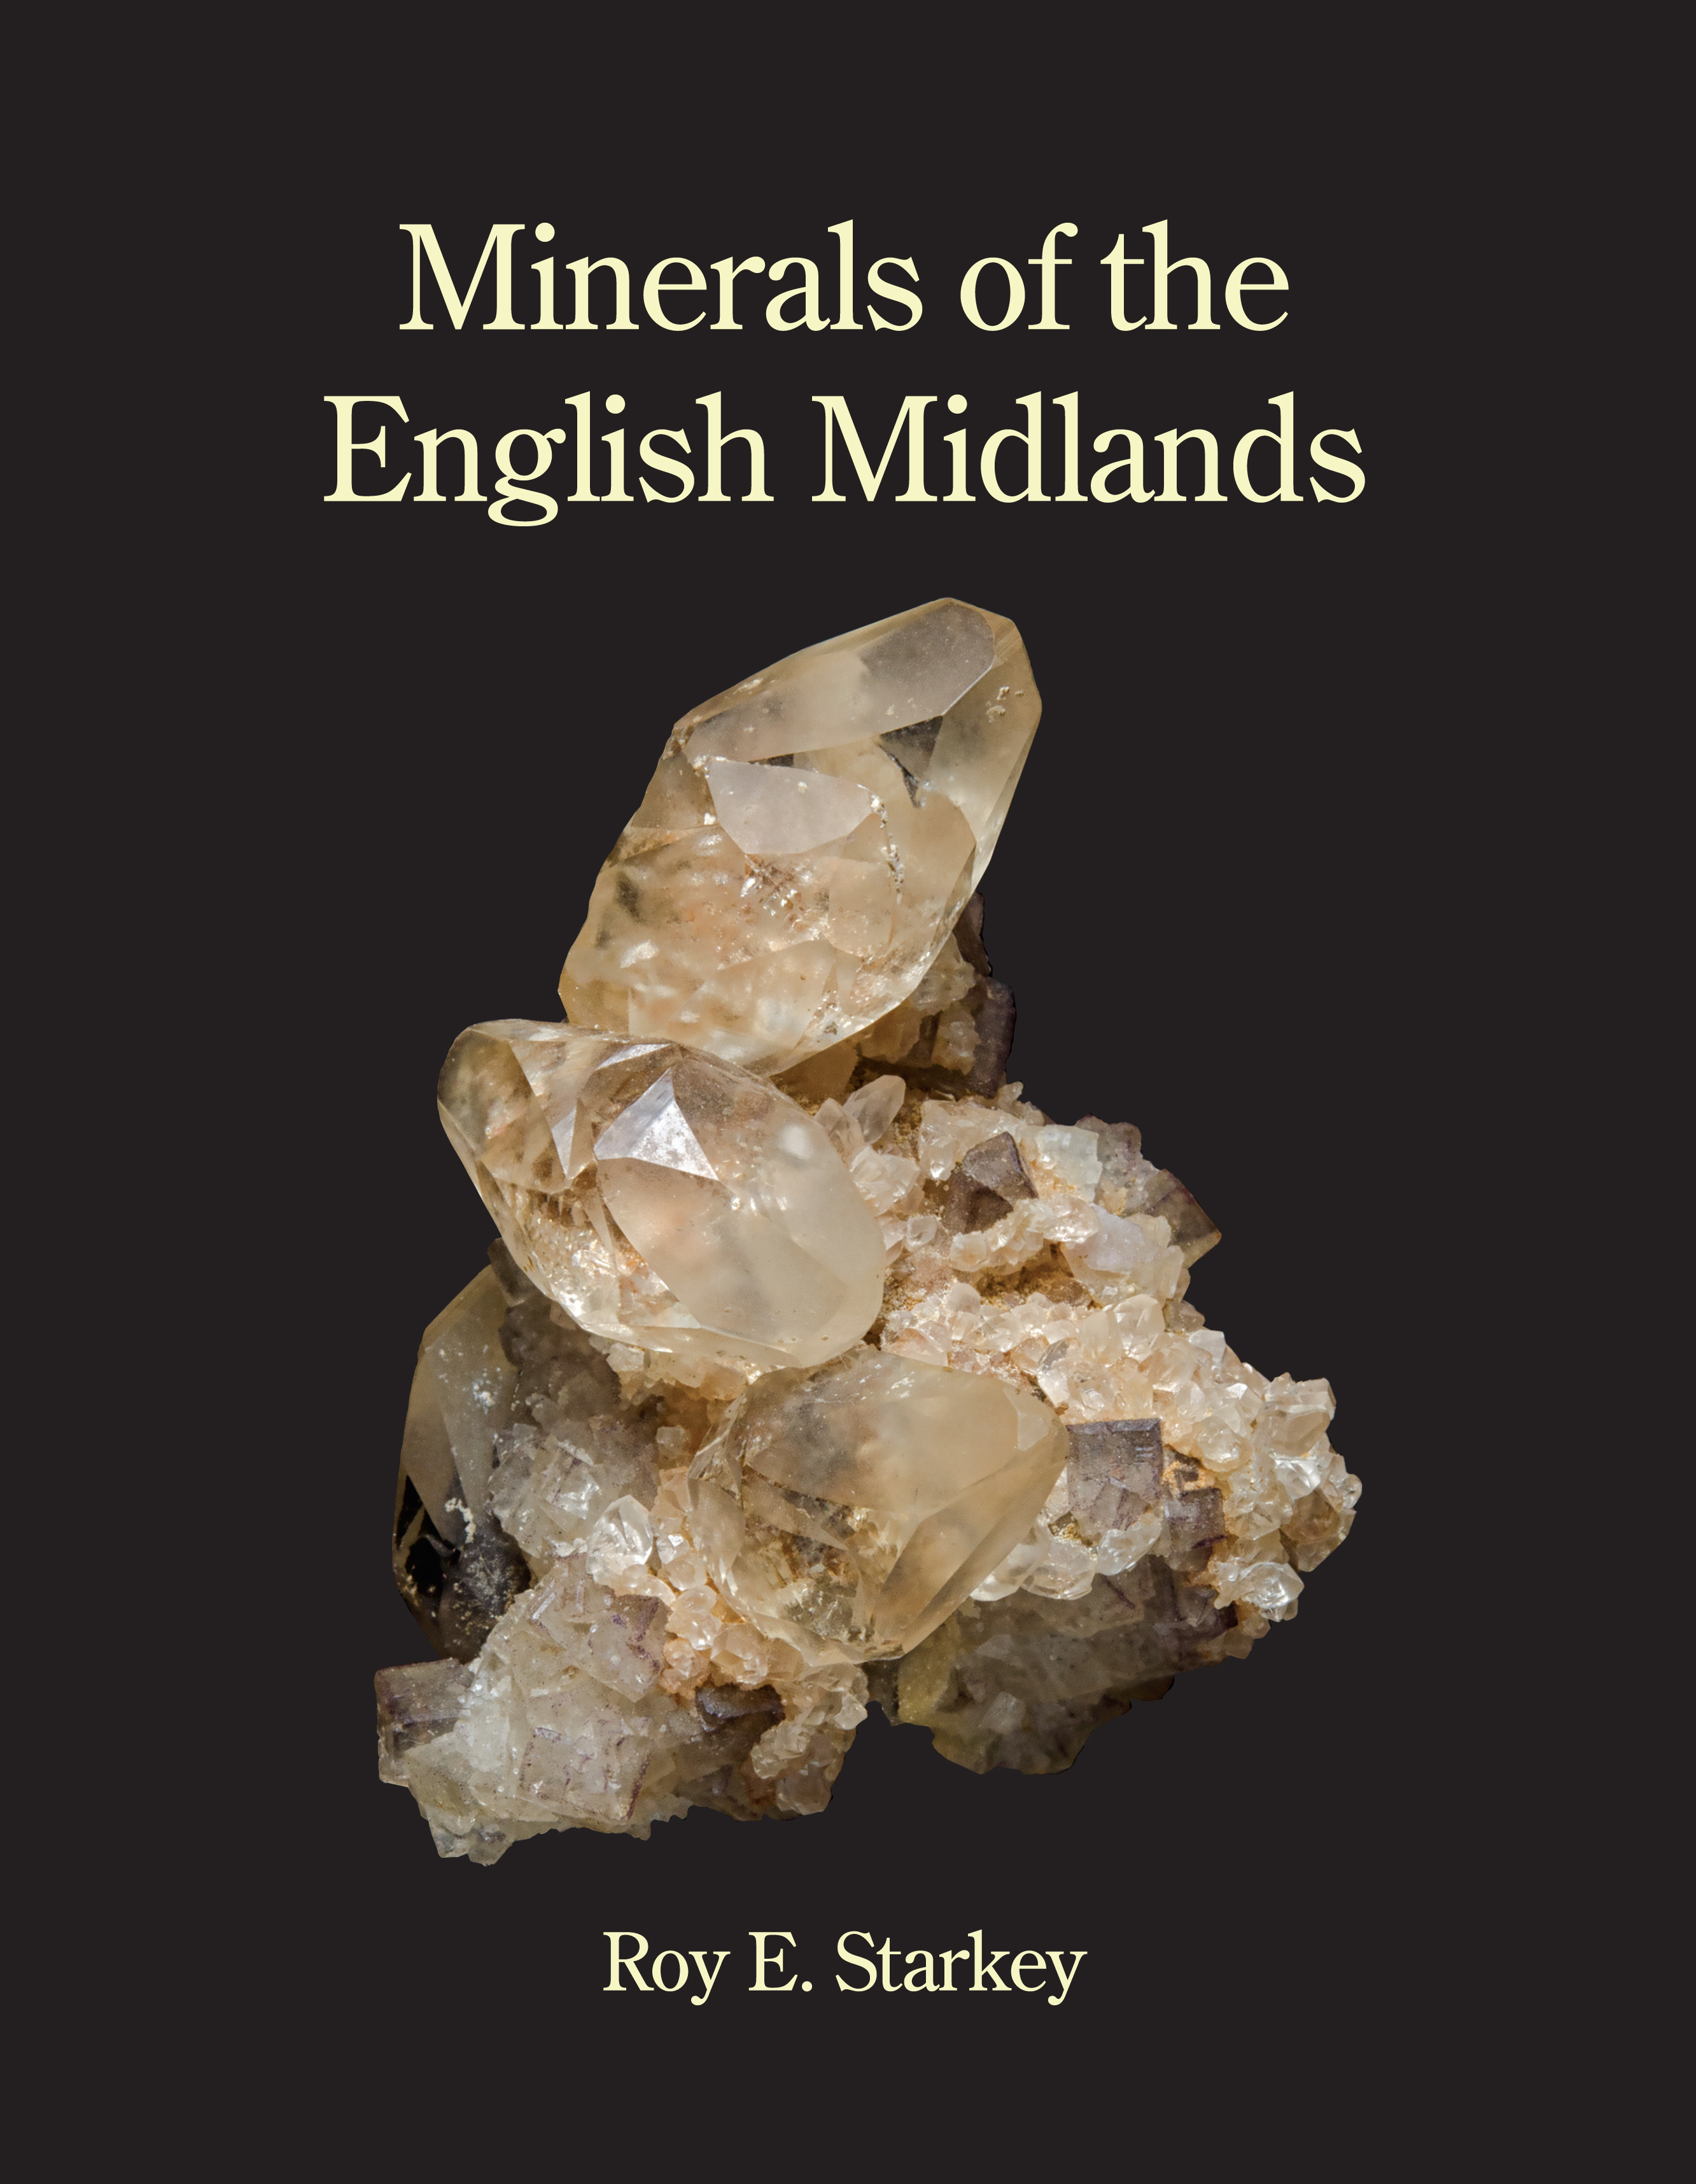 minerals of the english midlands new book british mineralogy